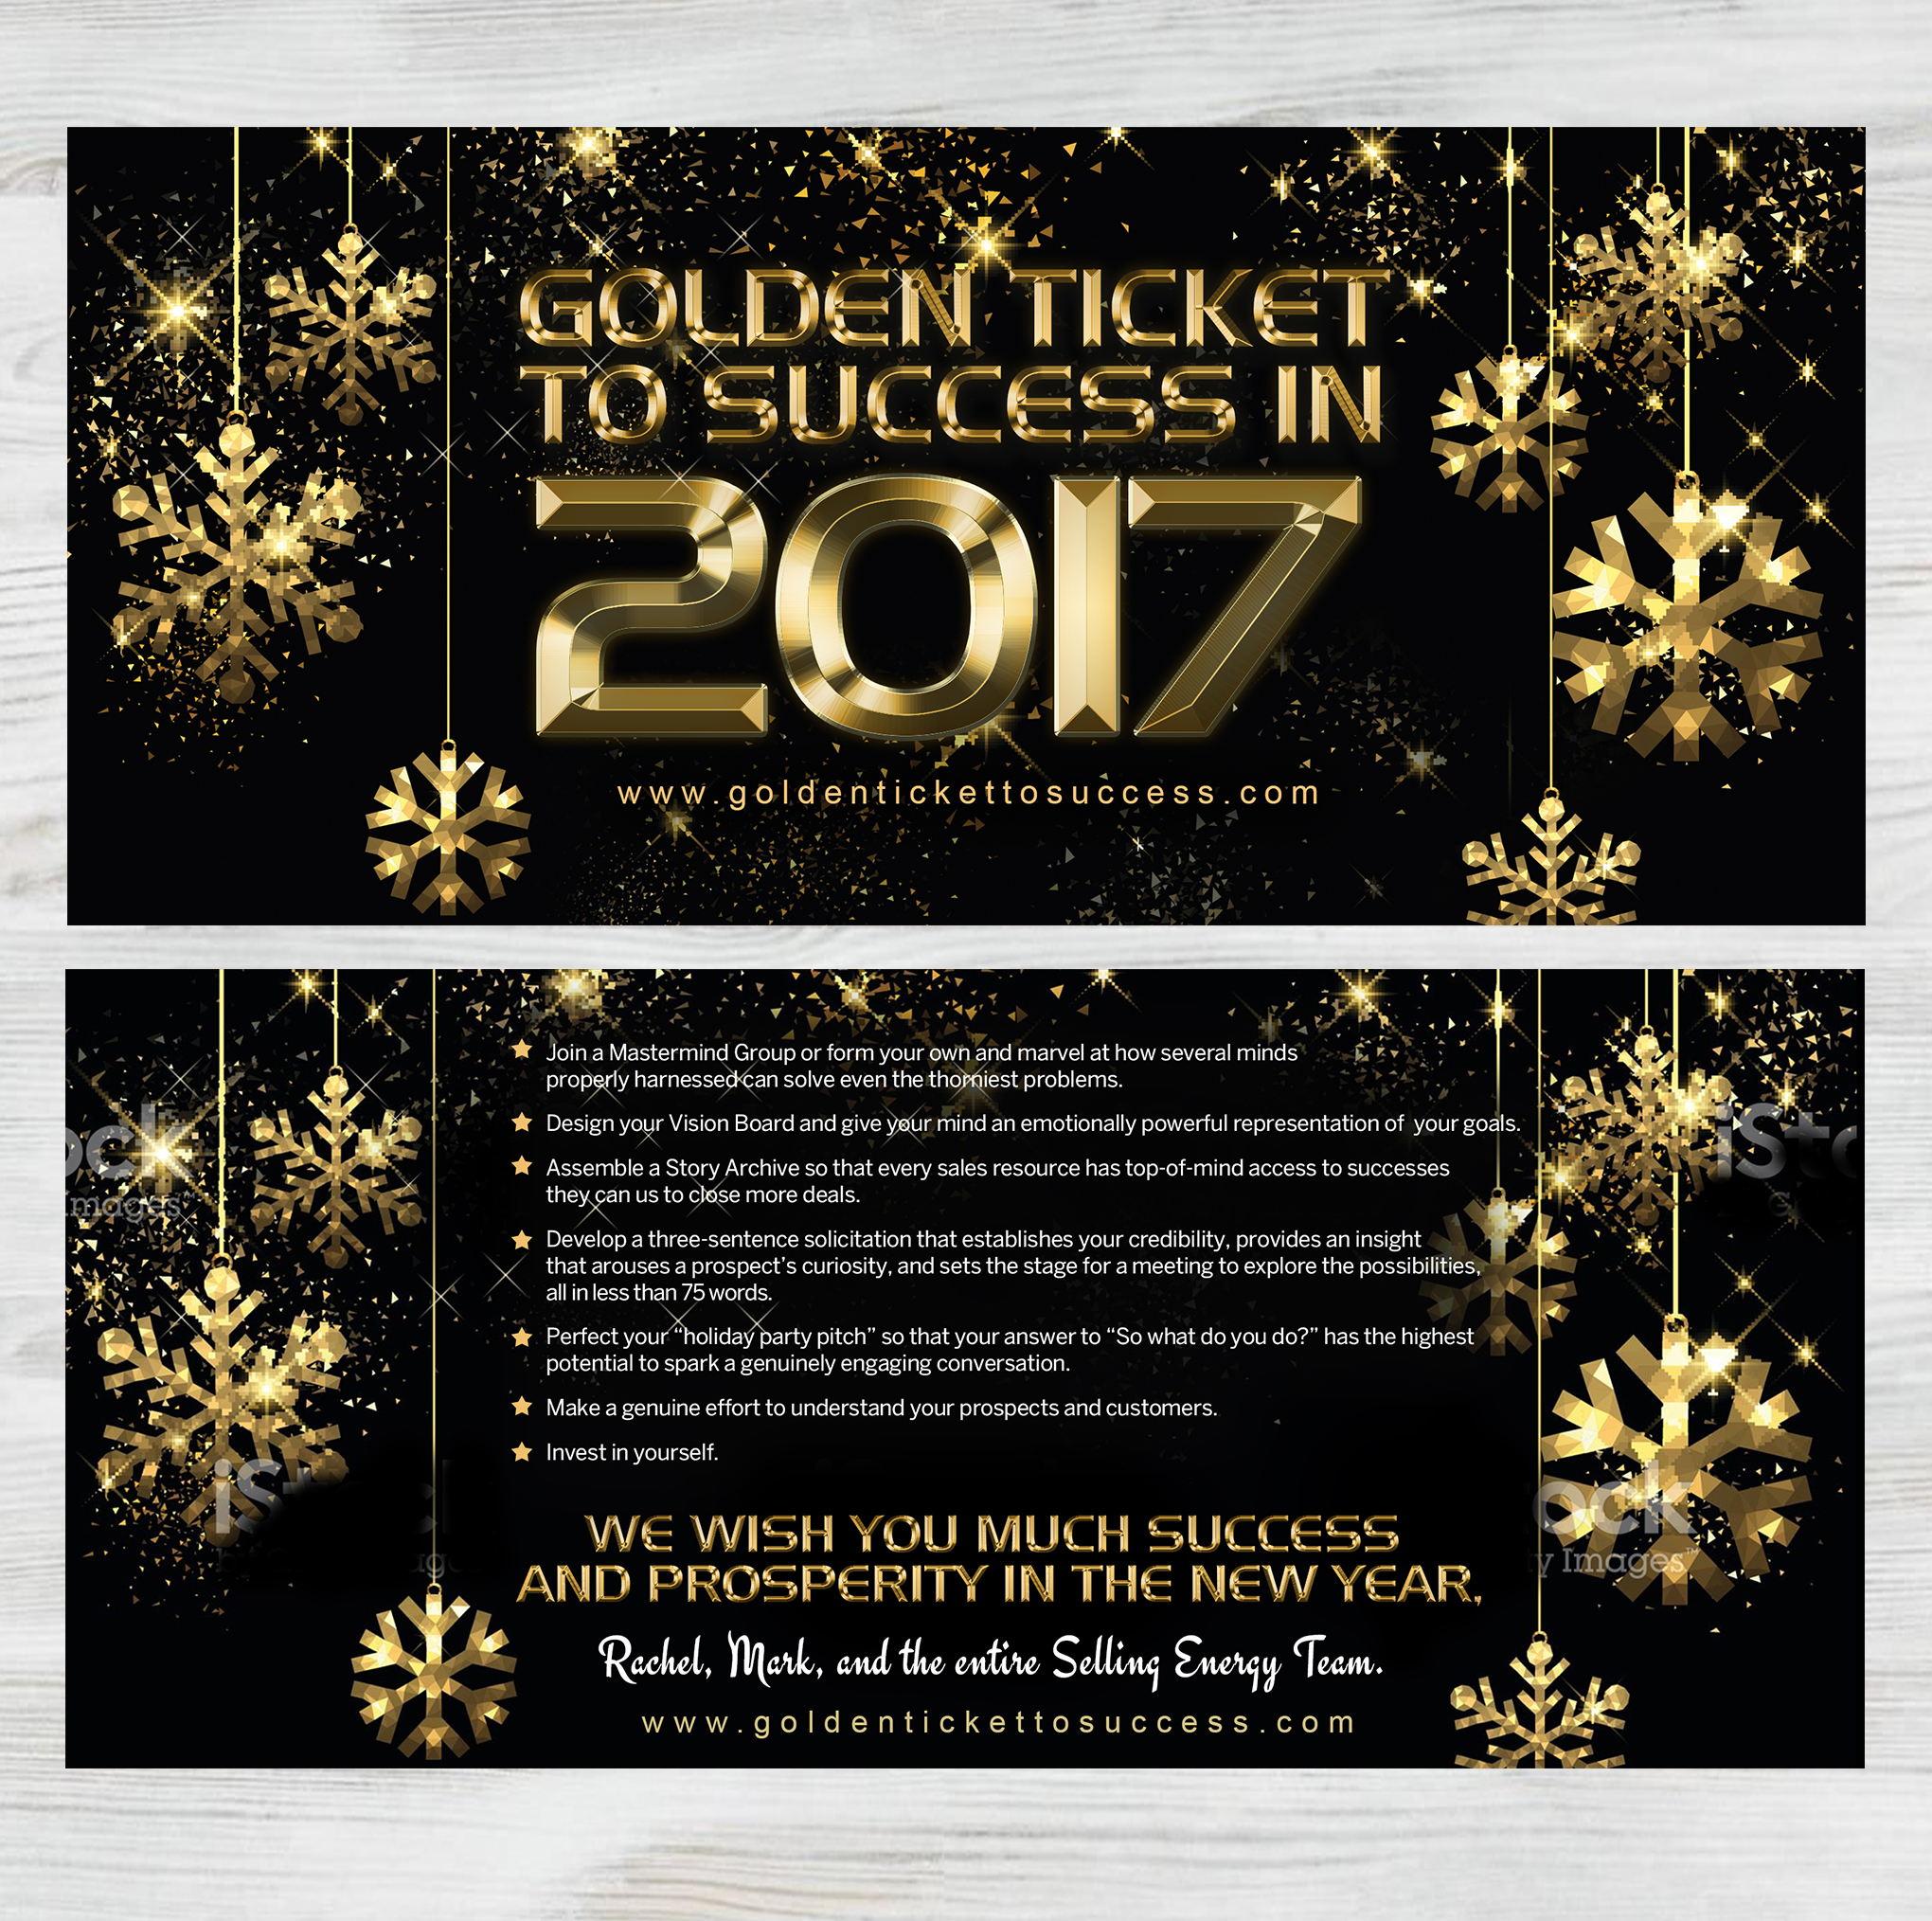 Golden Ticket to Success - Selling Energy